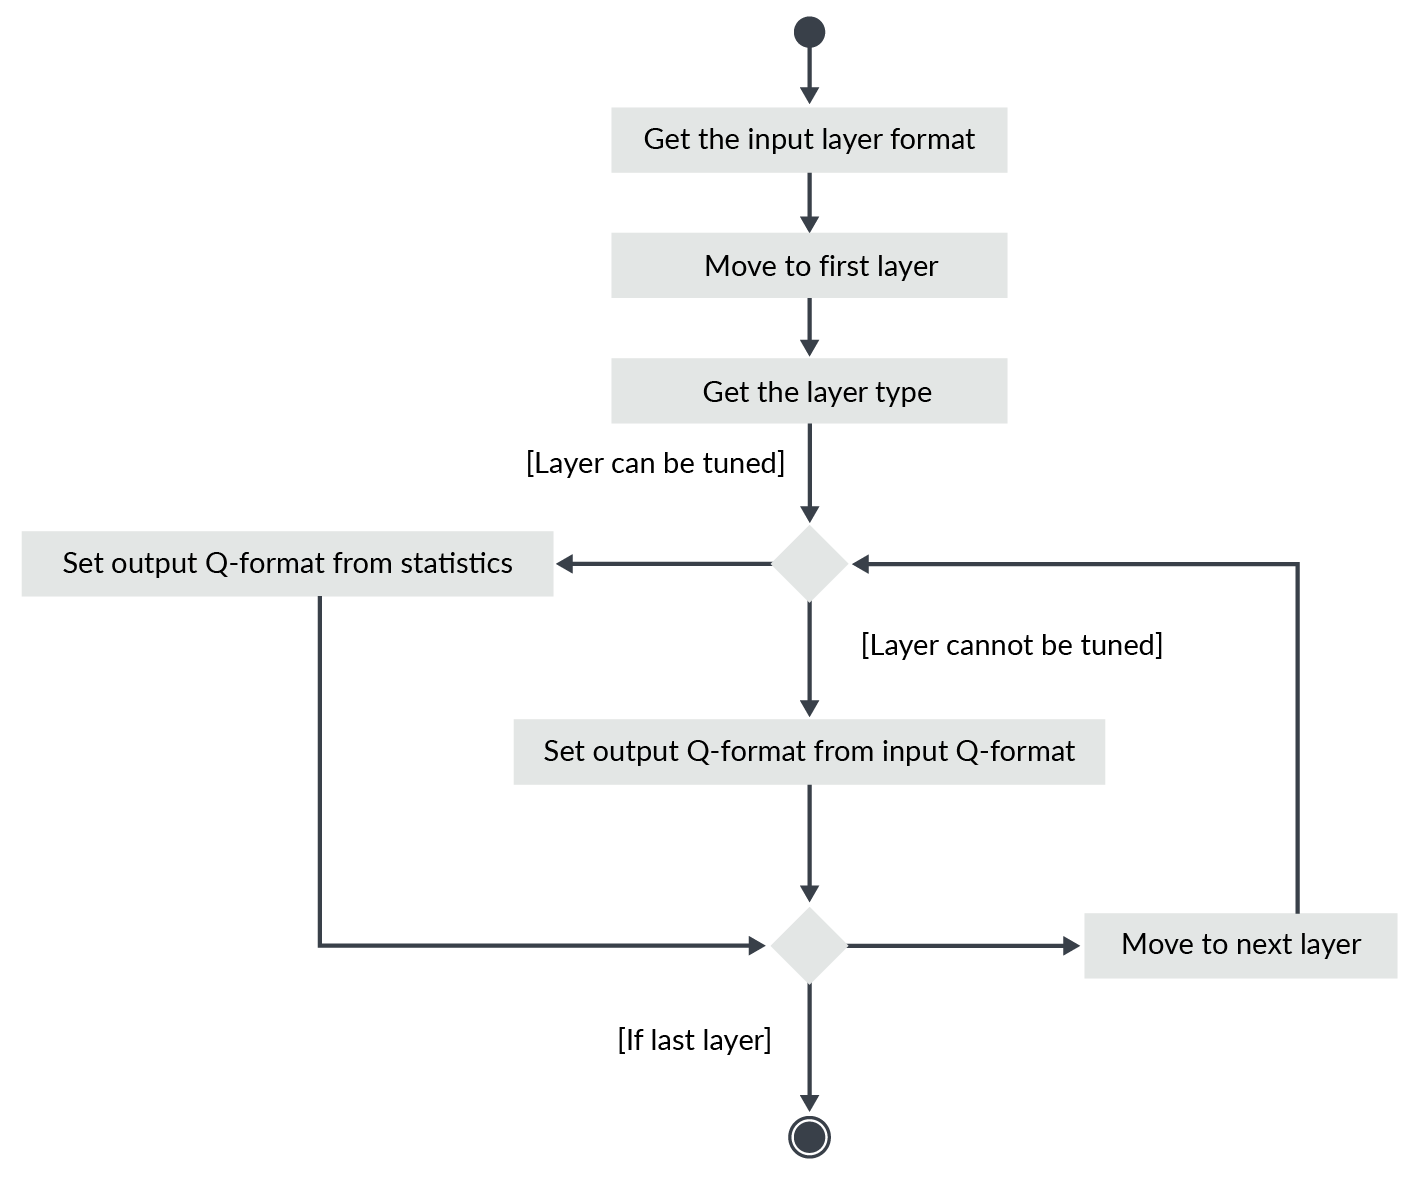 flow diagram showing procedure for choosing Q format for each input and output layer